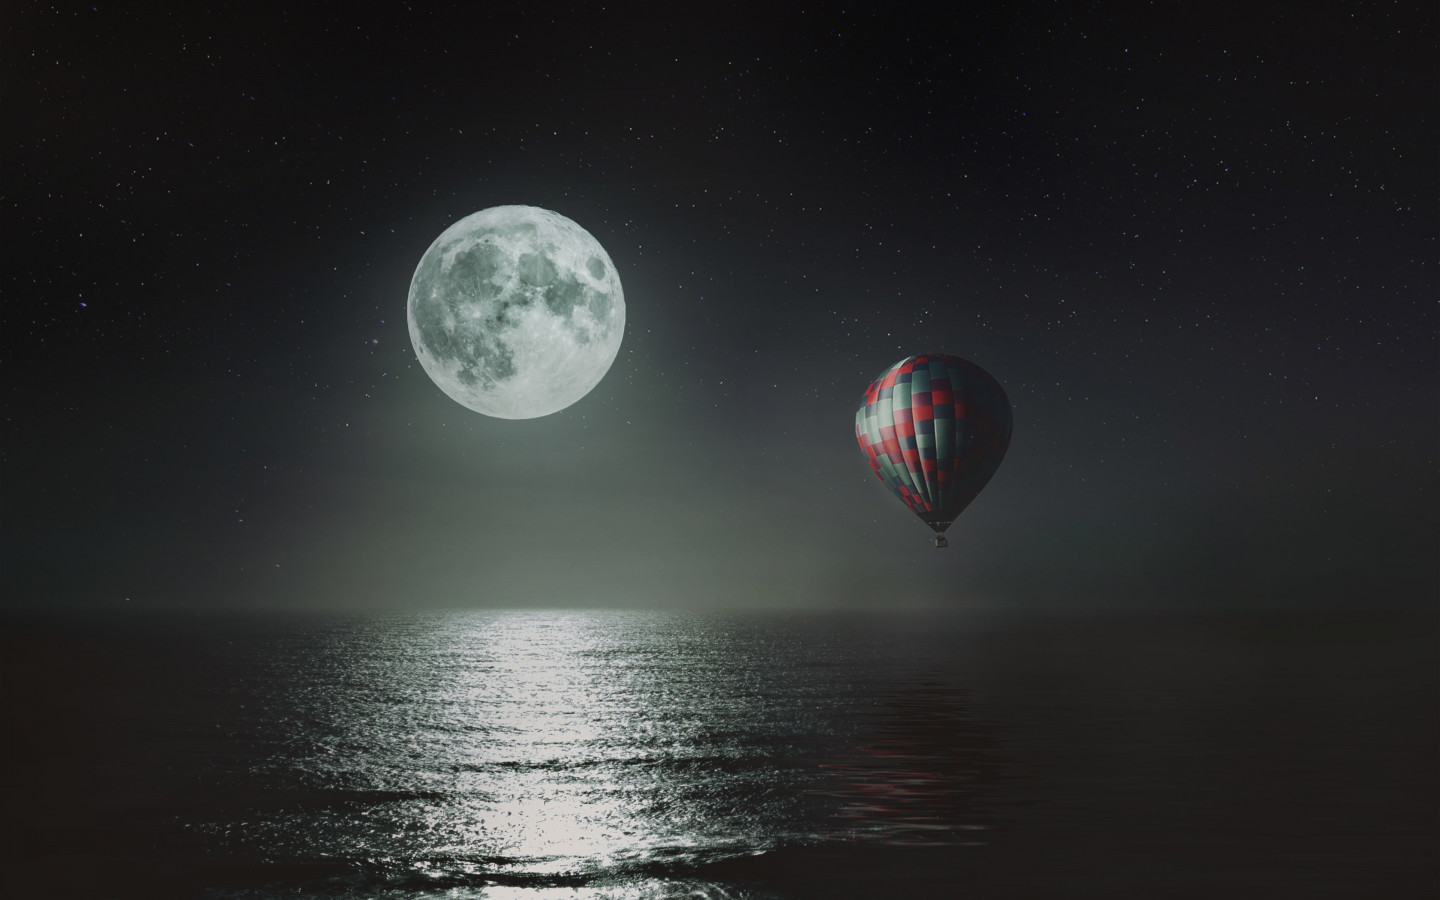 Hot air balloon over the night sky wallpaper 1440x900